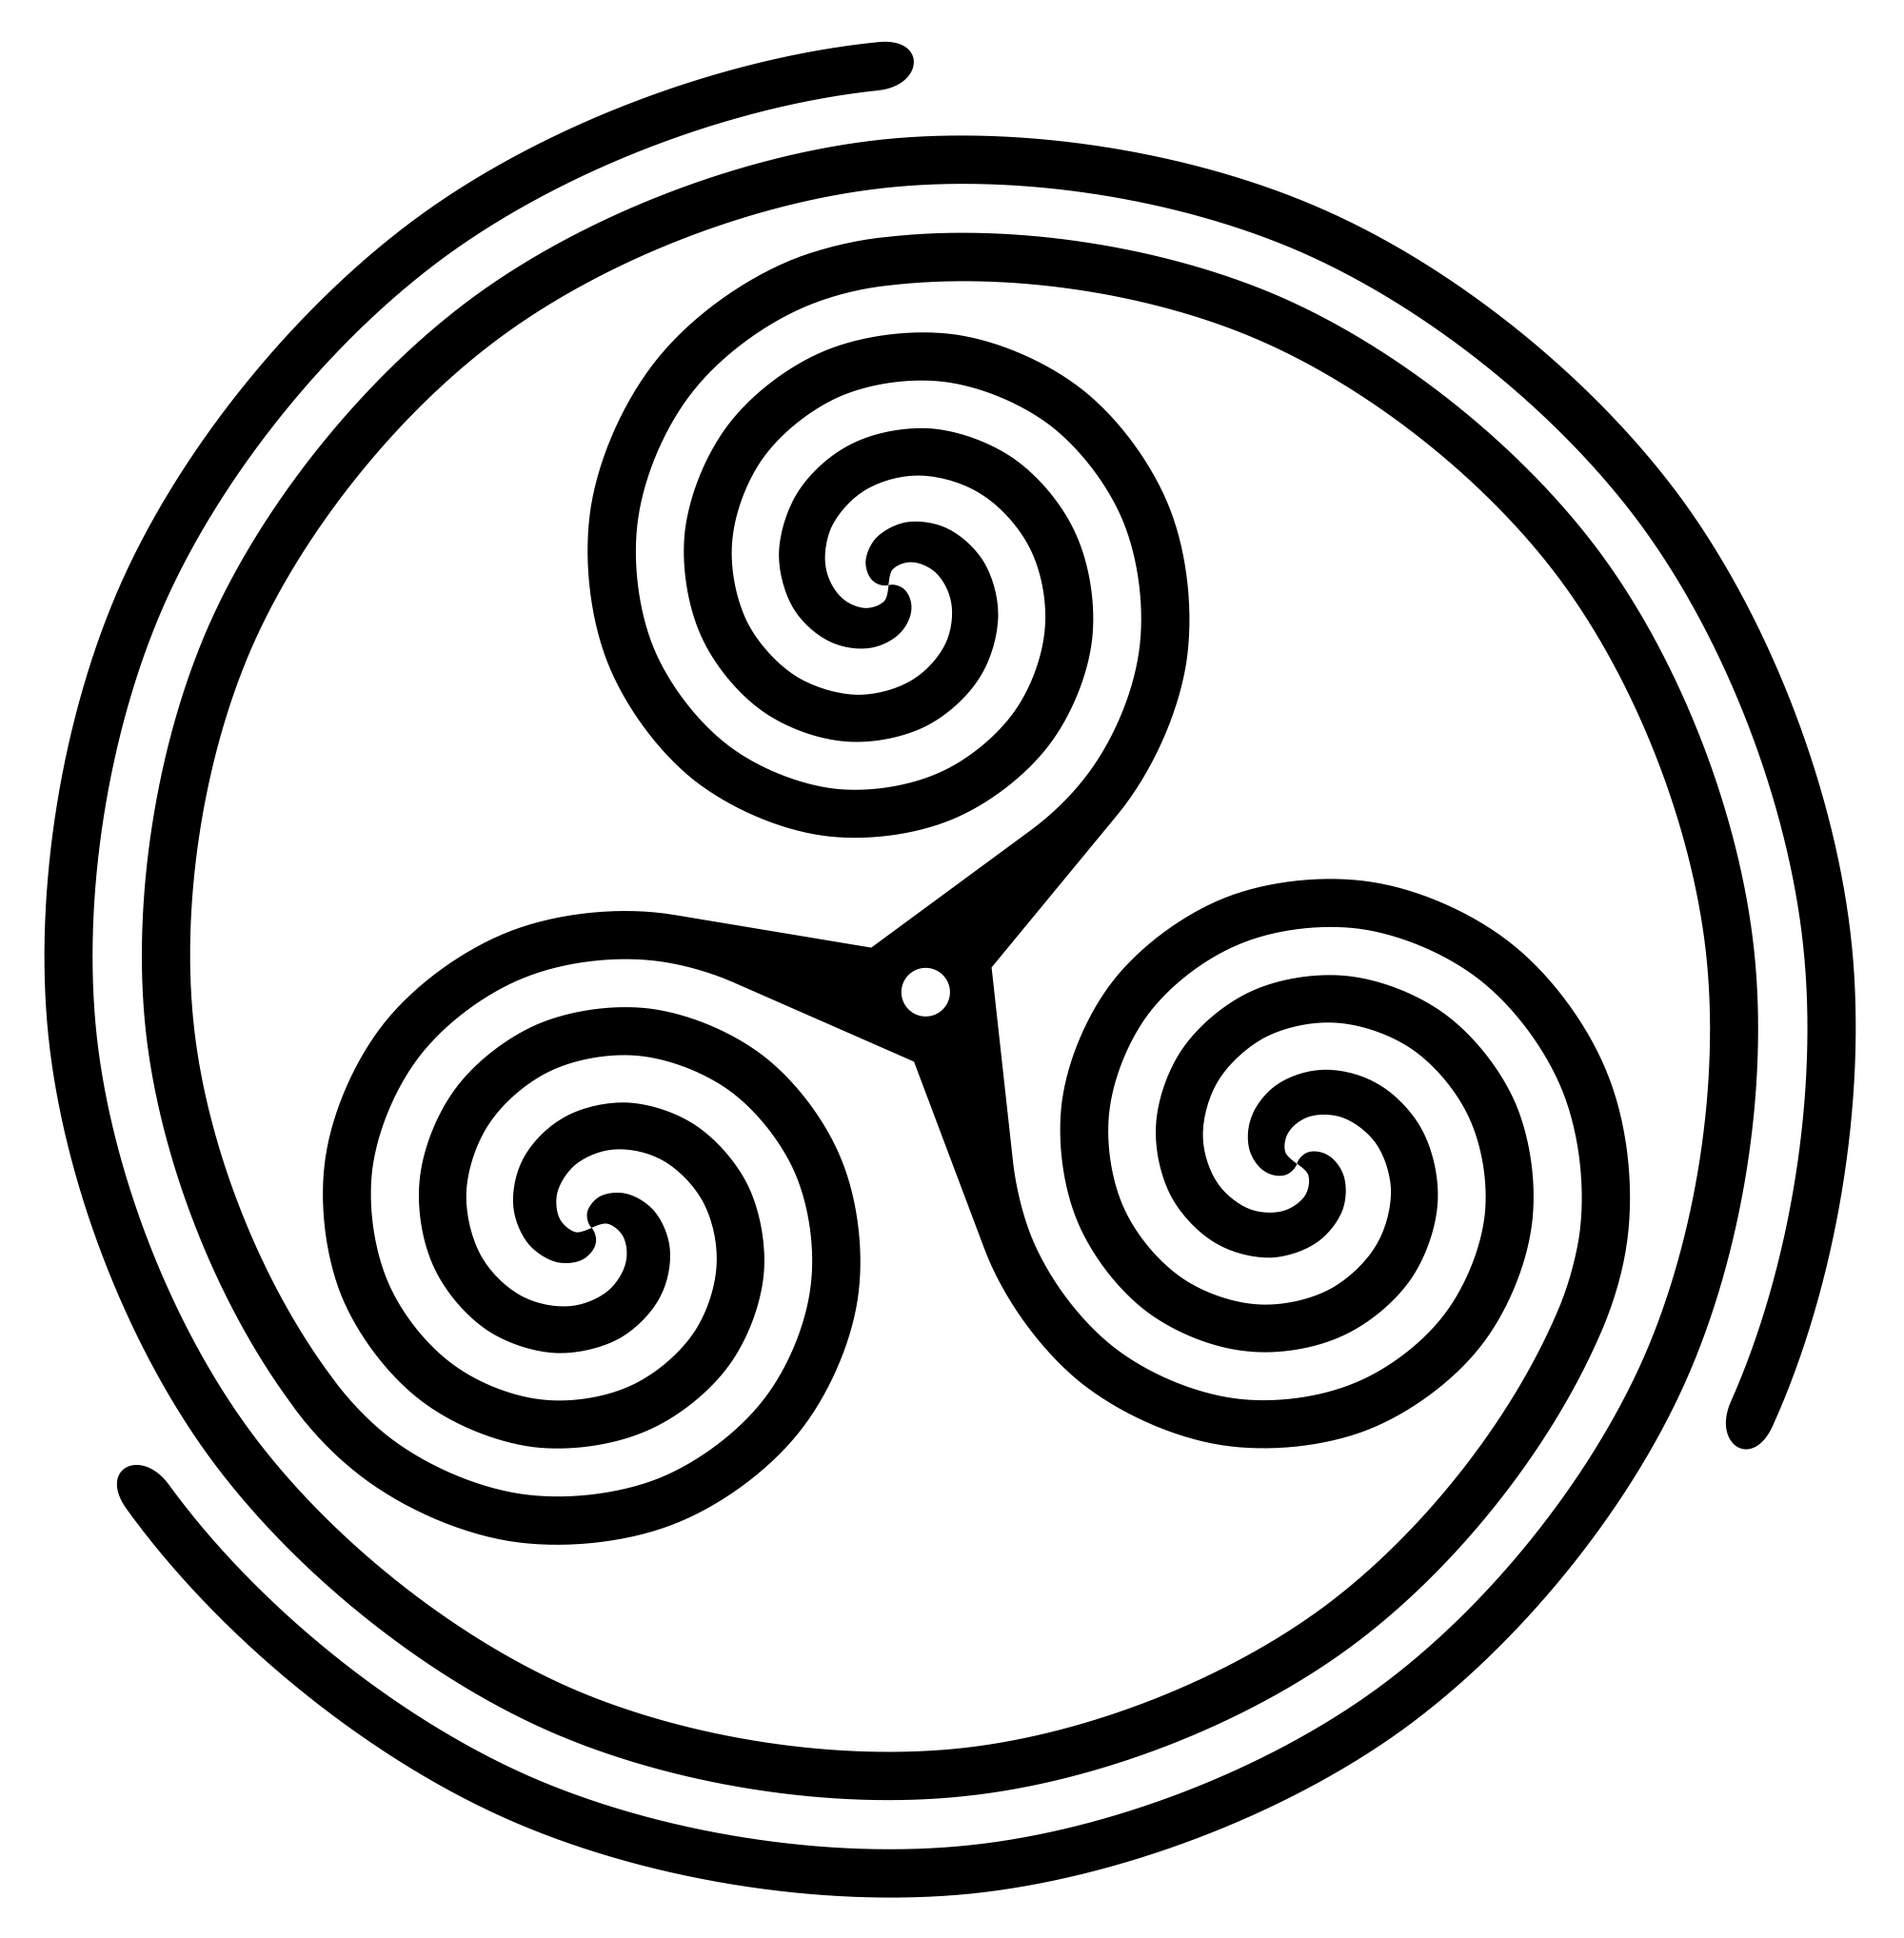 Drawing spiral japanese. File triskelion threespoked inspiral